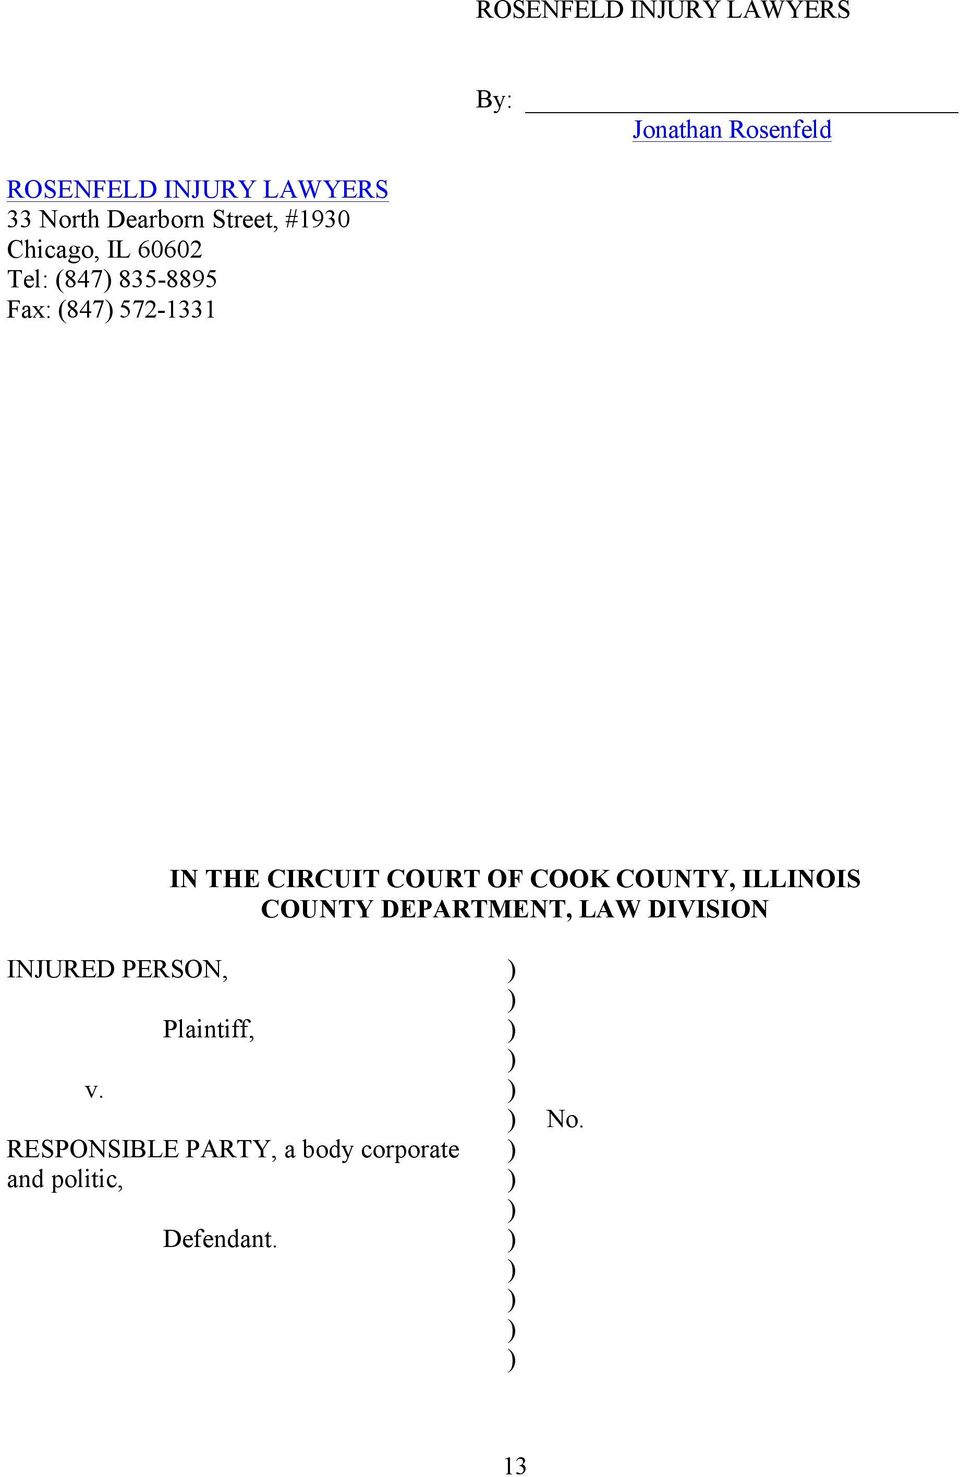 THE CIRCUIT COURT OF COOK COUNTY, ILLINOIS COUNTY DEPARTMENT, LAW DIVISION INJURED